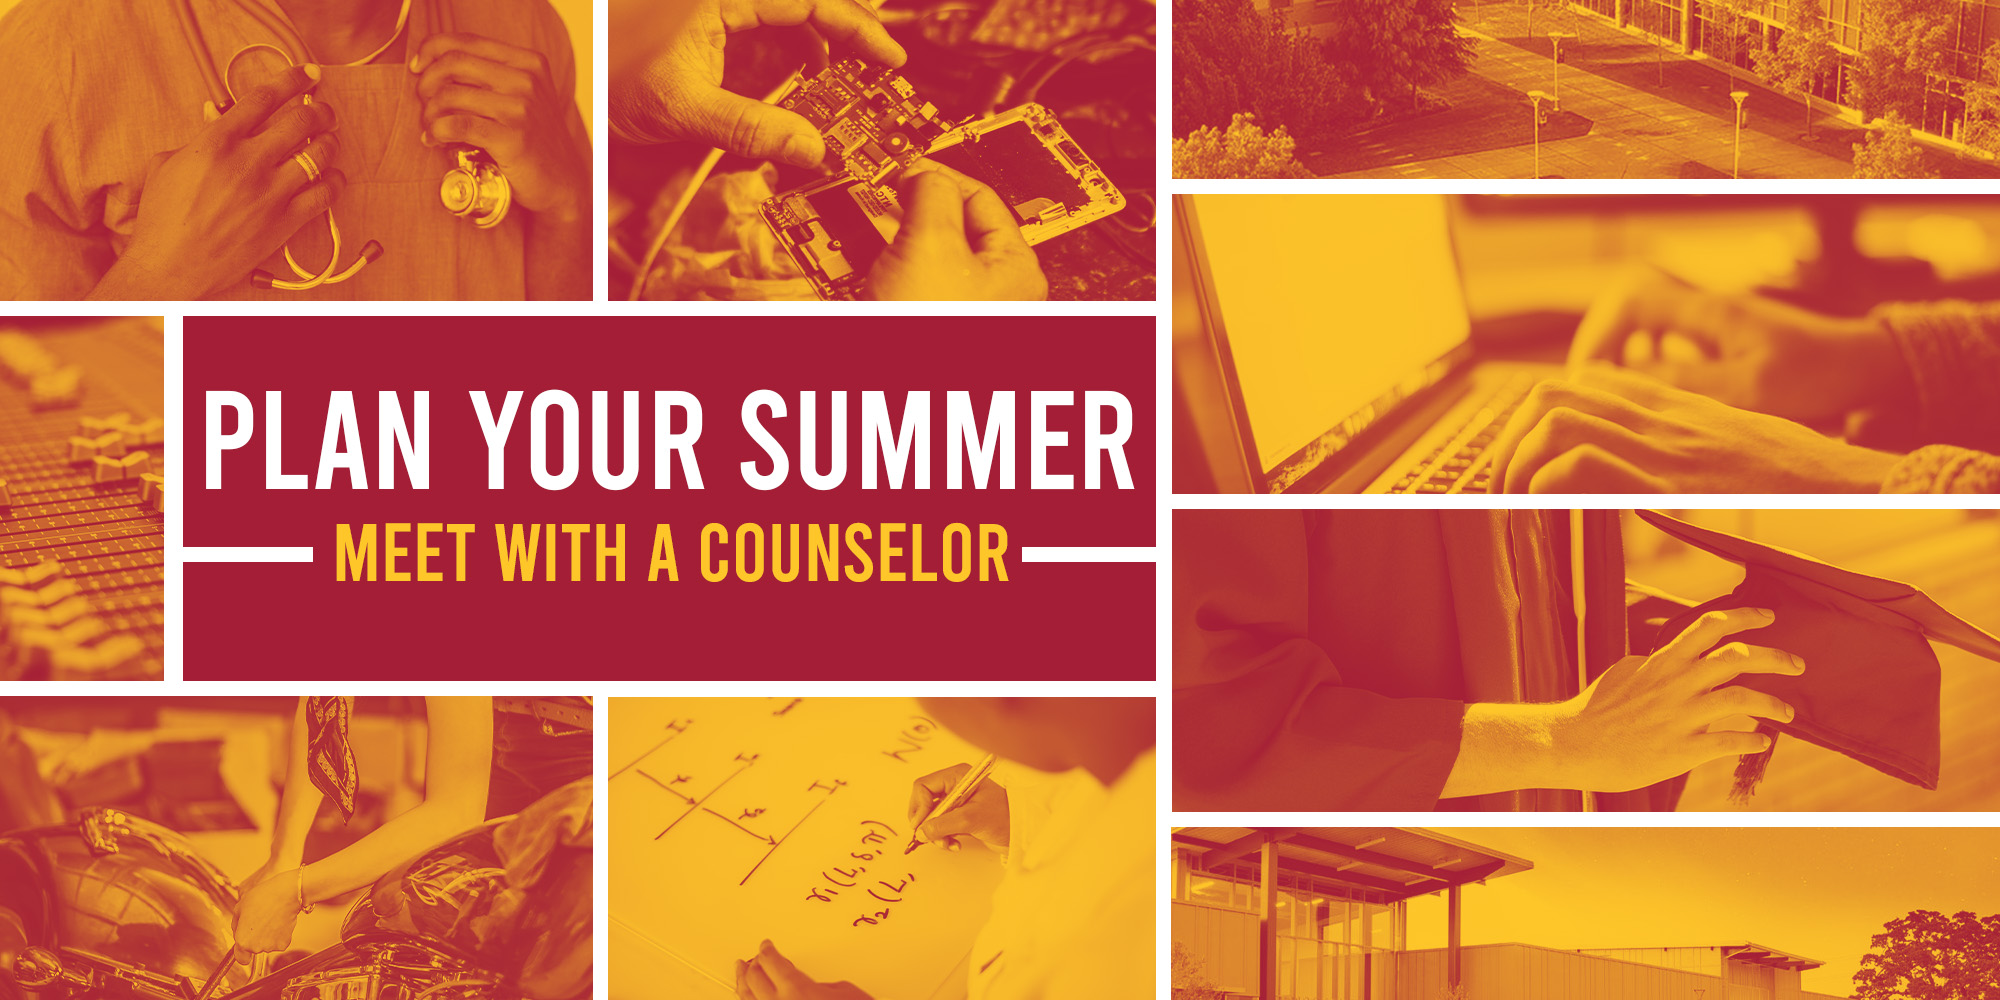 Meet with a counselor